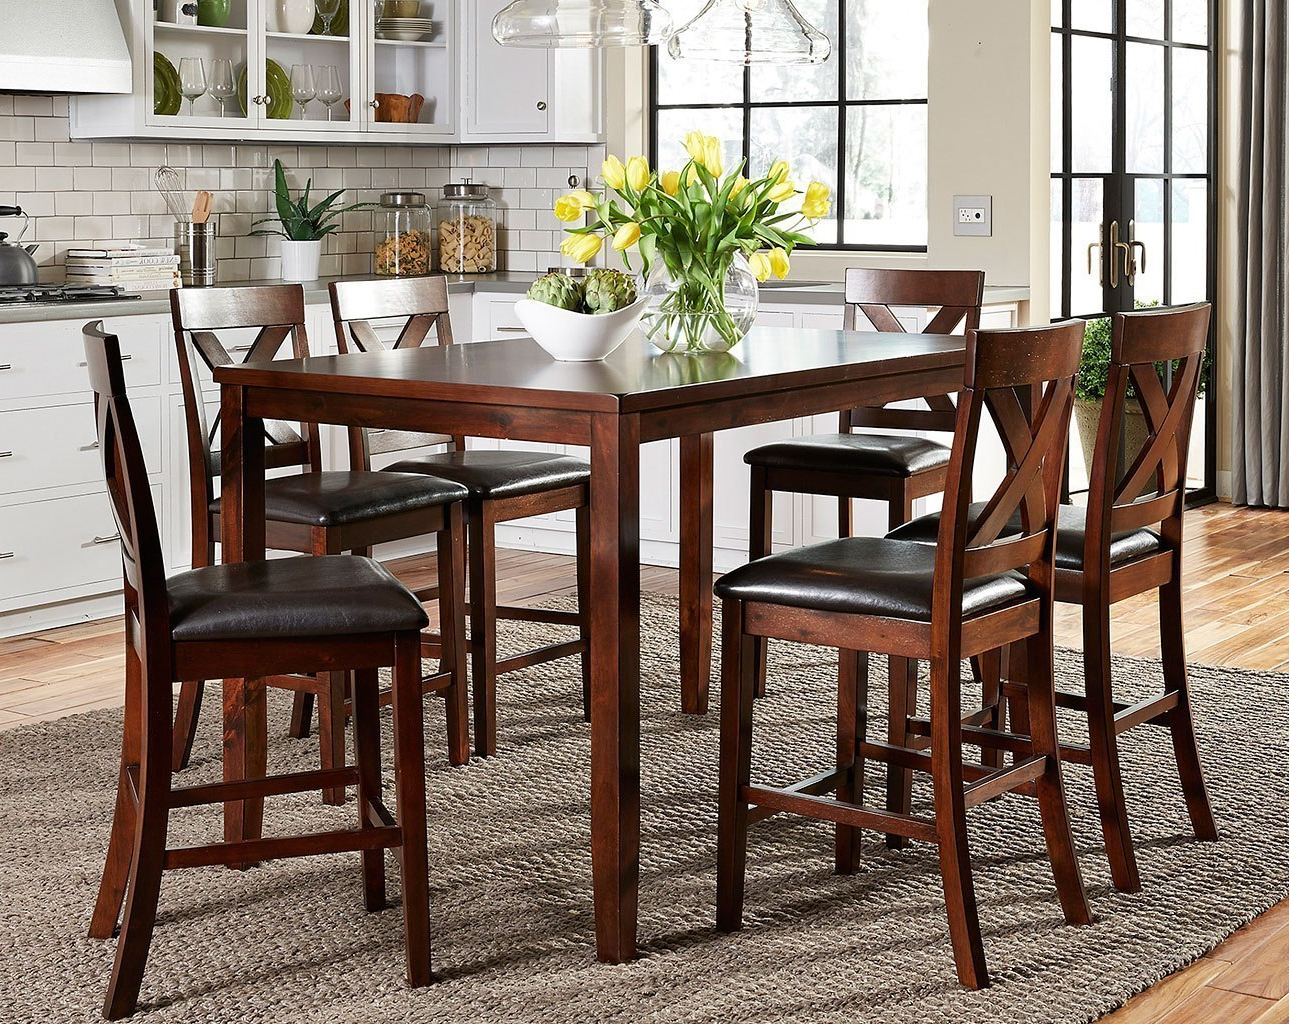 Thornton 7 Piece Counter Height Dining Set For 2019 Debby Small Space 3 Piece Dining Sets (View 11 of 25)